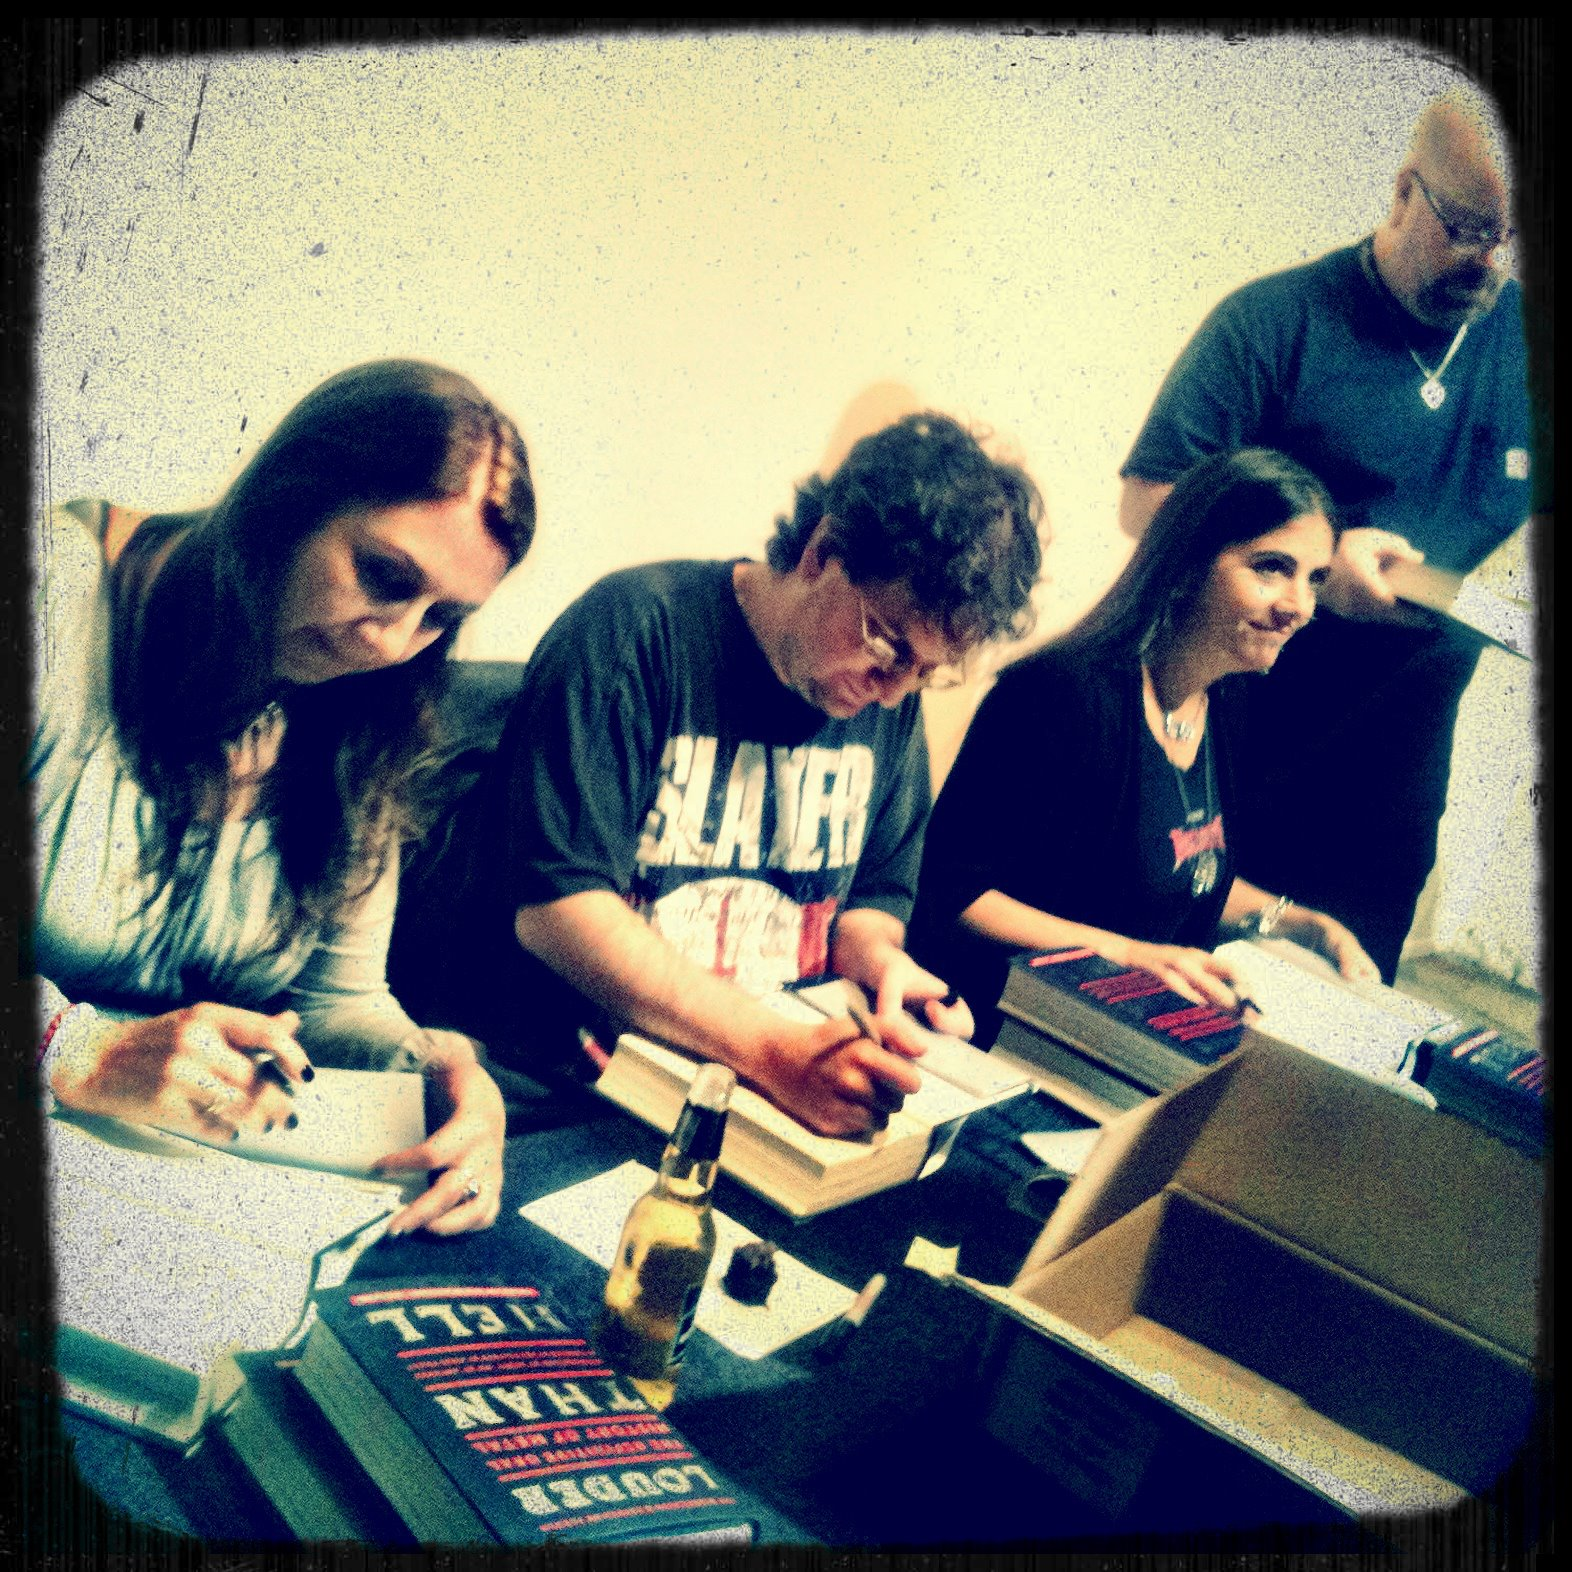 With authors Katherine Turman and Jon Wiederhorn and photographer Stephanie Cabral signing copies of Louder Than Hell at the book launch at PowerHouse Arena in Brooklyn, NY- May 13, 2013. Photo by Shawn Williams